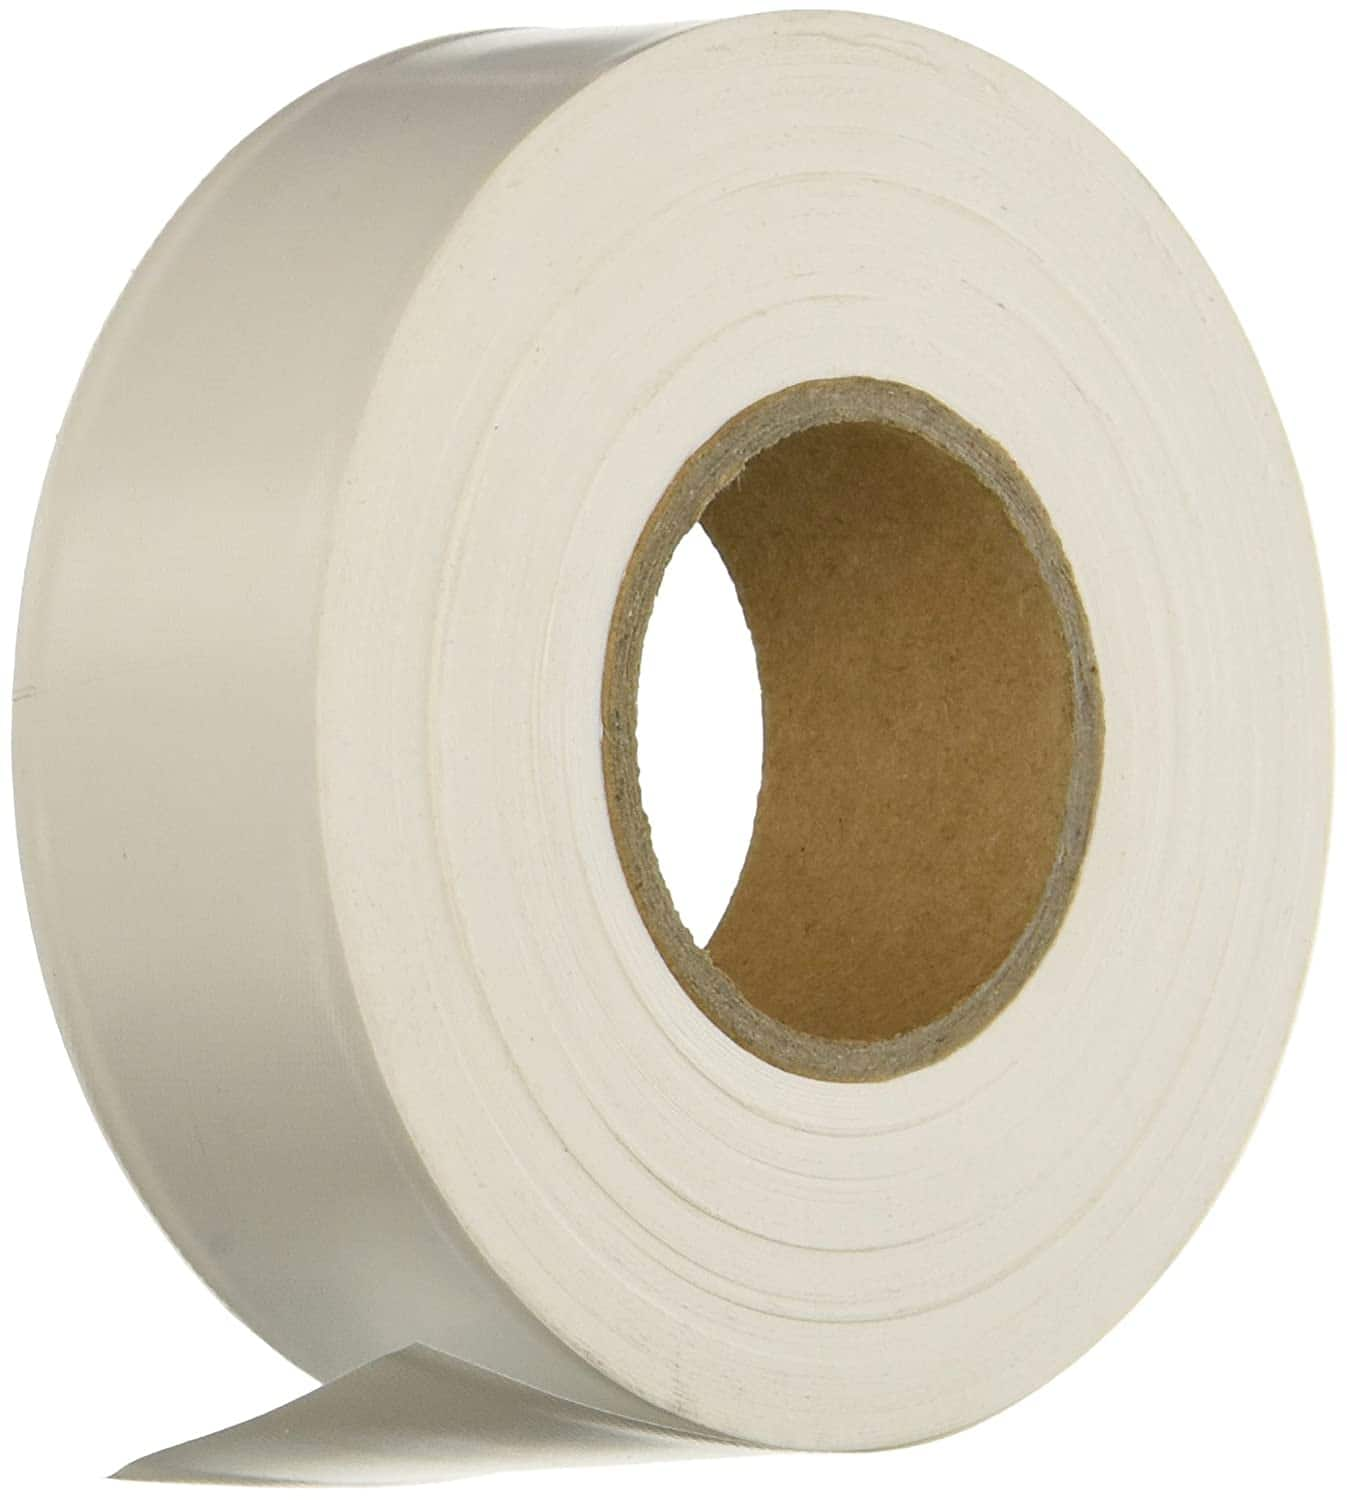 300-Ft Irwin PVC Flagging Tape (White) $1.05 + Free Shipping w/ Prime or $25+